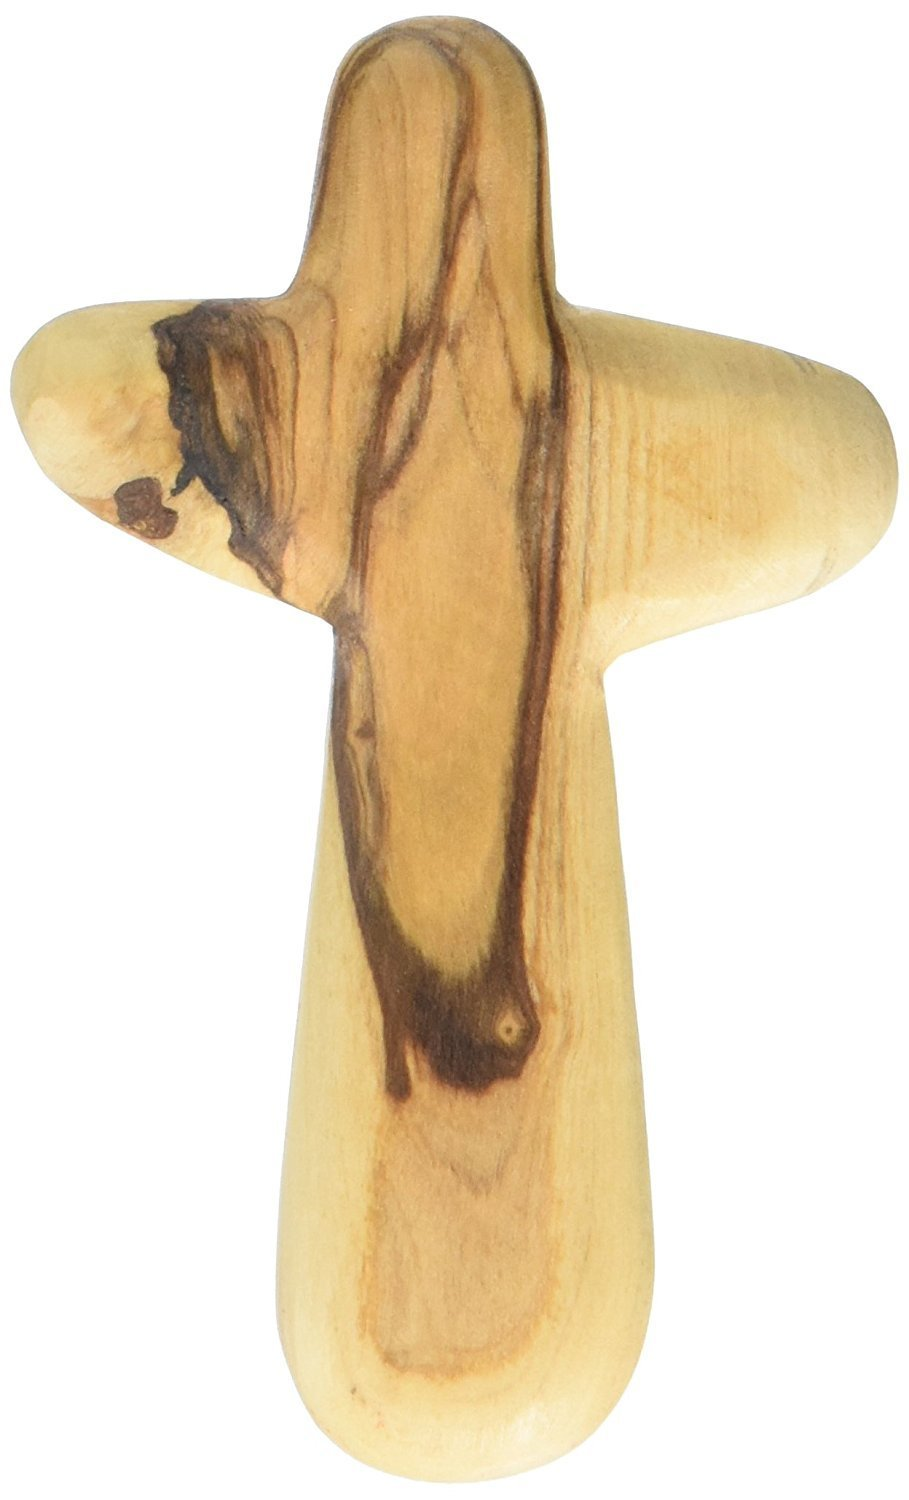 Holding Cross will fit in your Palm known as Olive wood Comfort Holding Cross with Velvet gift bag - Authentically from Bethlehem (4 inches) 00016